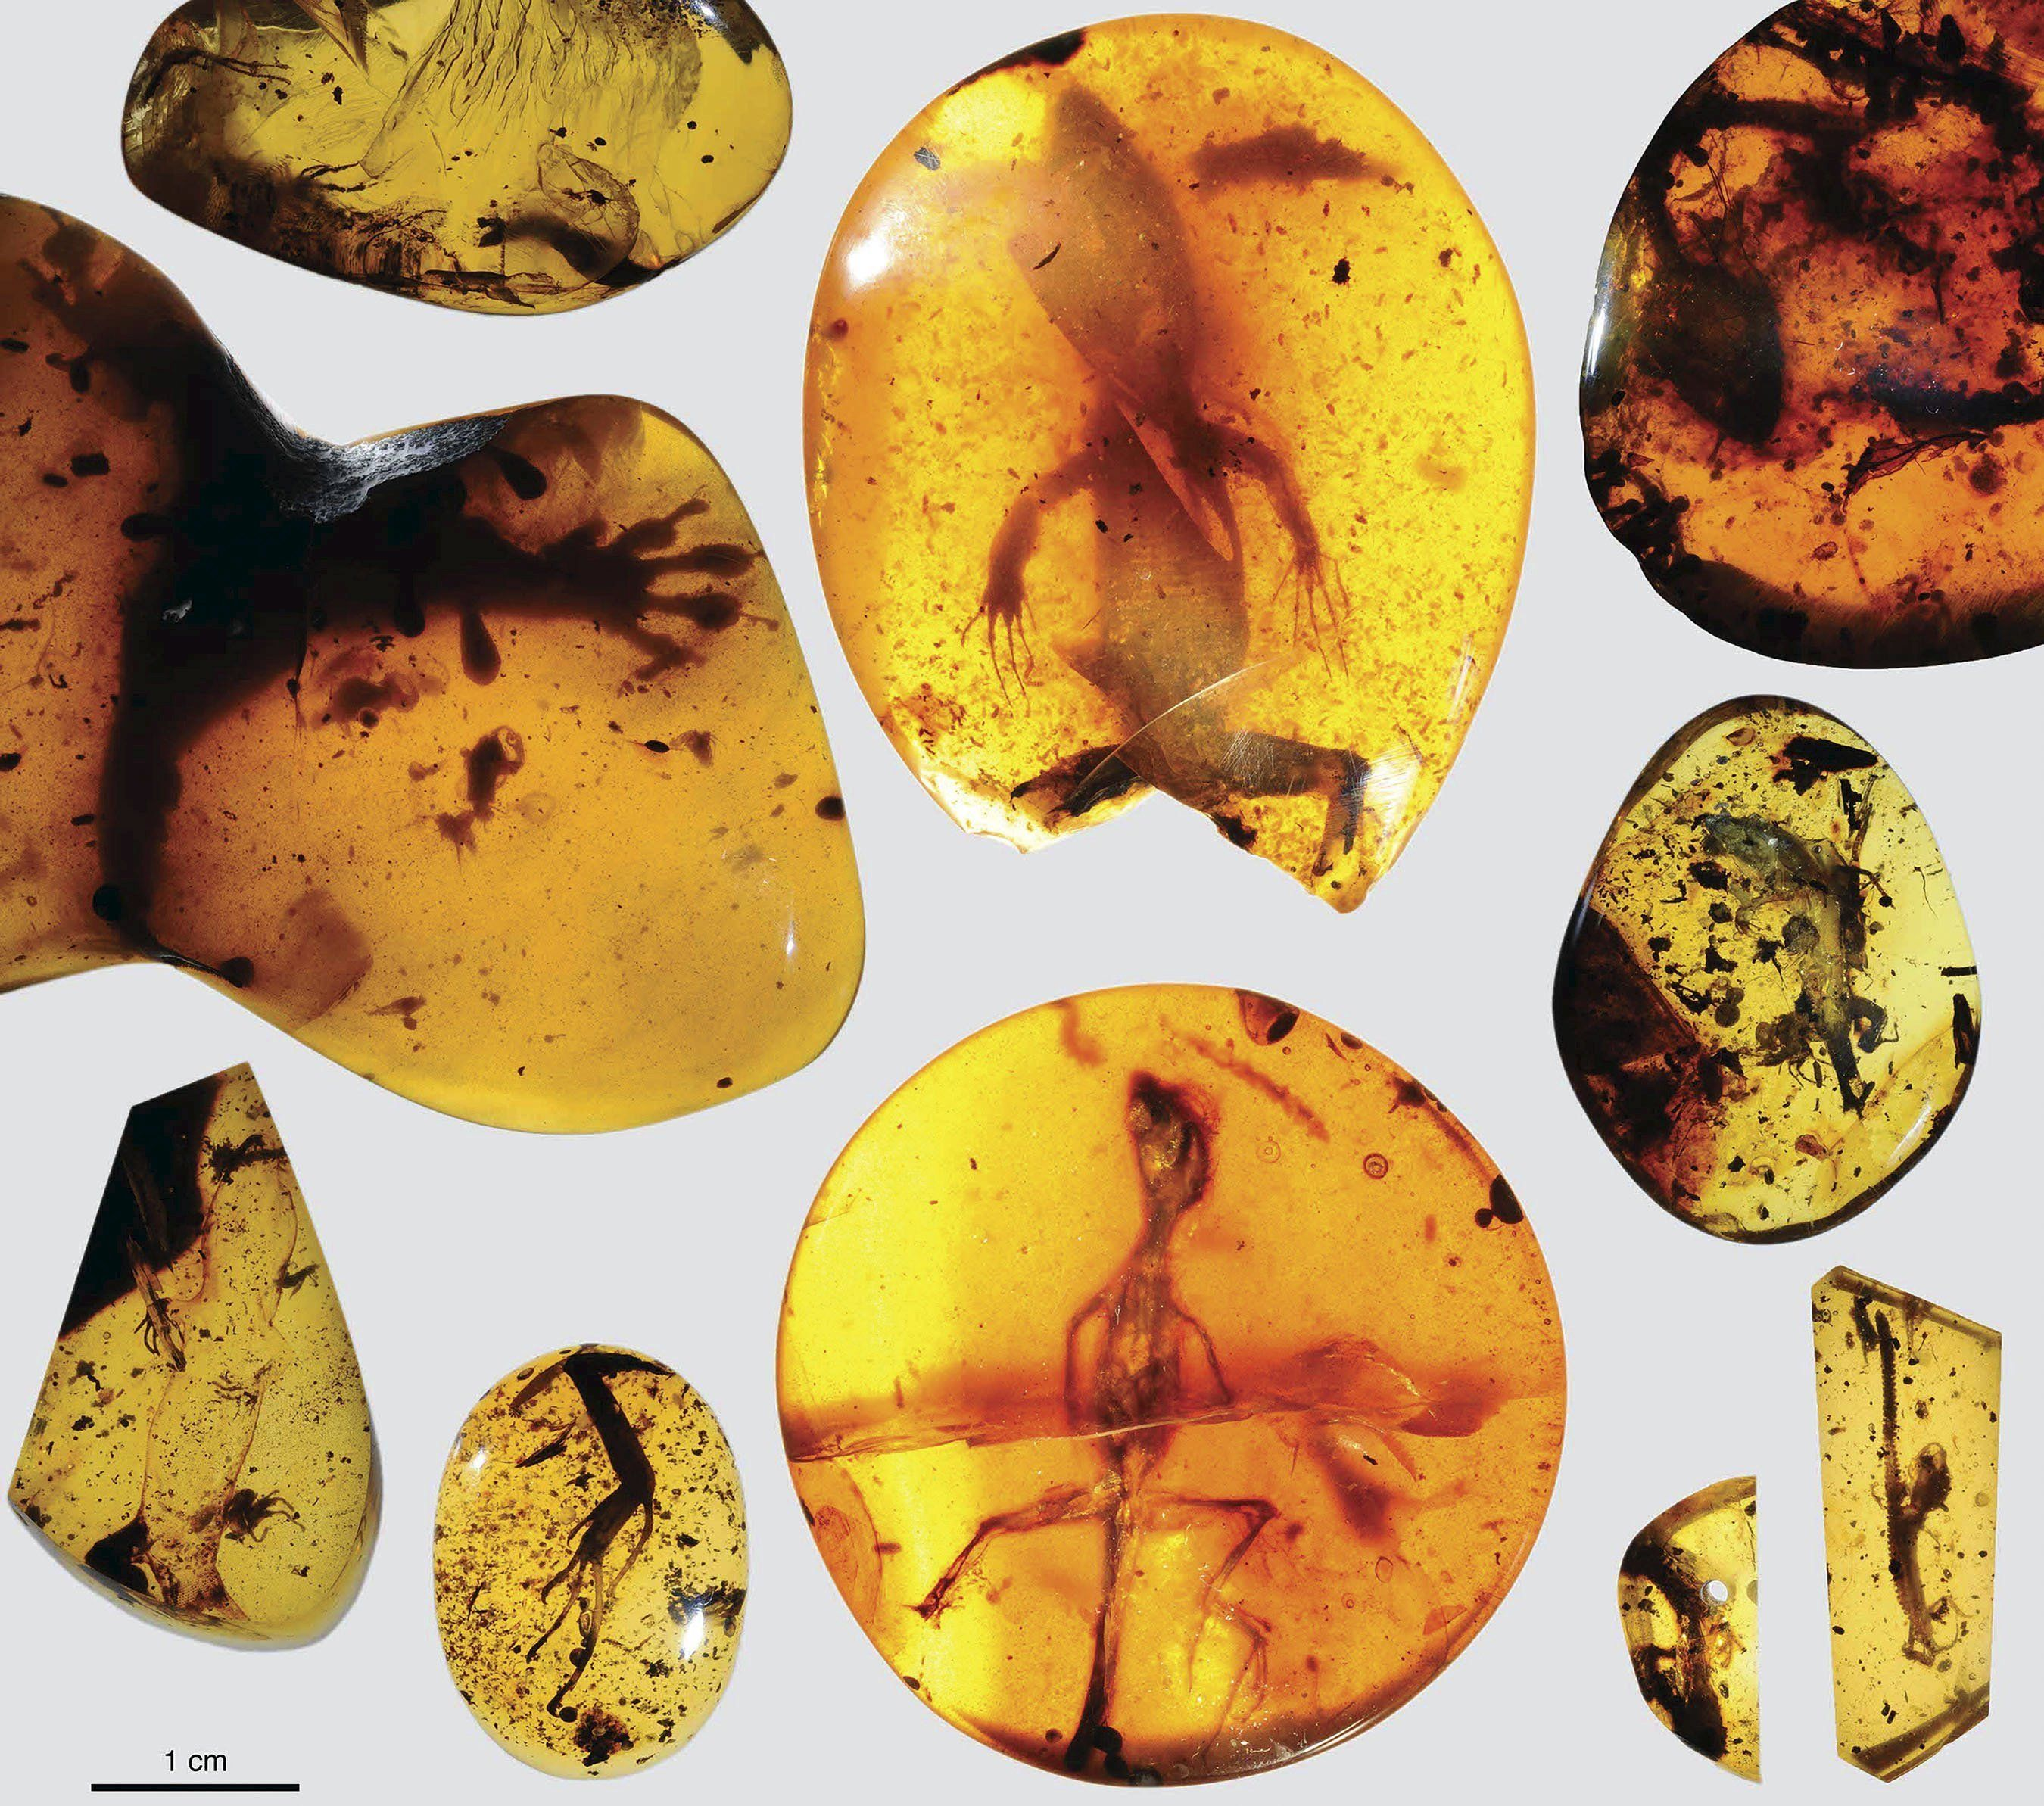 "Various lizard specimens are shown preserved in ancient amber from present-day Myanmar in Southeast Asia, in this handout photo provided by the Florida Museum of Natural History on March 5, 2016. A fossilized lizard found in Southeast Asia preserved in amber dates back some 99 million years, Florida scientists have determined, making it the oldest specimen of its kind and a ""missing link"" for reptile researchers. The lizard is some 75 million years older than the previous record holder, according to researchers at the Florida Museum of Natural History, who announced the finding this week.  REUTERS/David Grimaldi/Florida Museum of Natural History/Handout via Reuters  ATTENTION EDITORS - THIS PICTURE WAS PROVIDED BY A THIRD PARTY. REUTERS IS UNABLE TO INDEPENDENTLY VERIFY THE AUTHENTICITY, CONTENT, LOCATION OR DATE OF THIS IMAGE. FOR EDITORIAL USE ONLY. NOT FOR SALE FOR MARKETING OR ADVERTISING CAMPAIGNS. THIS PICTURE IS DISTRIBUTED EXACTLY AS RECEIVED BY REUTERS, AS A SERVICE TO CLIENTS."